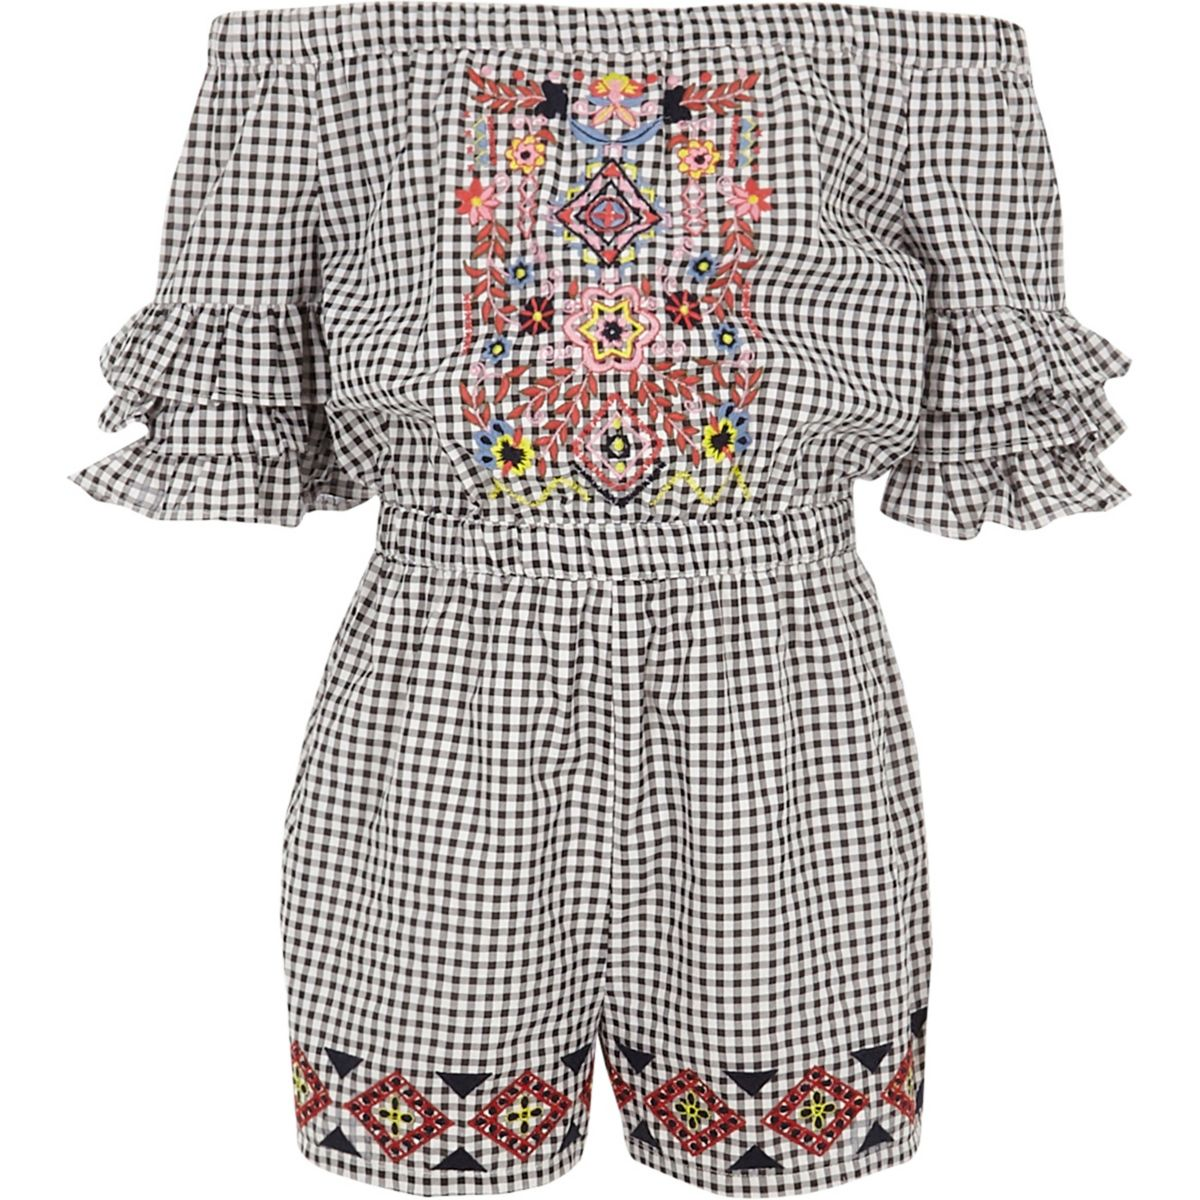 Girls black gingham embroidered playsuit